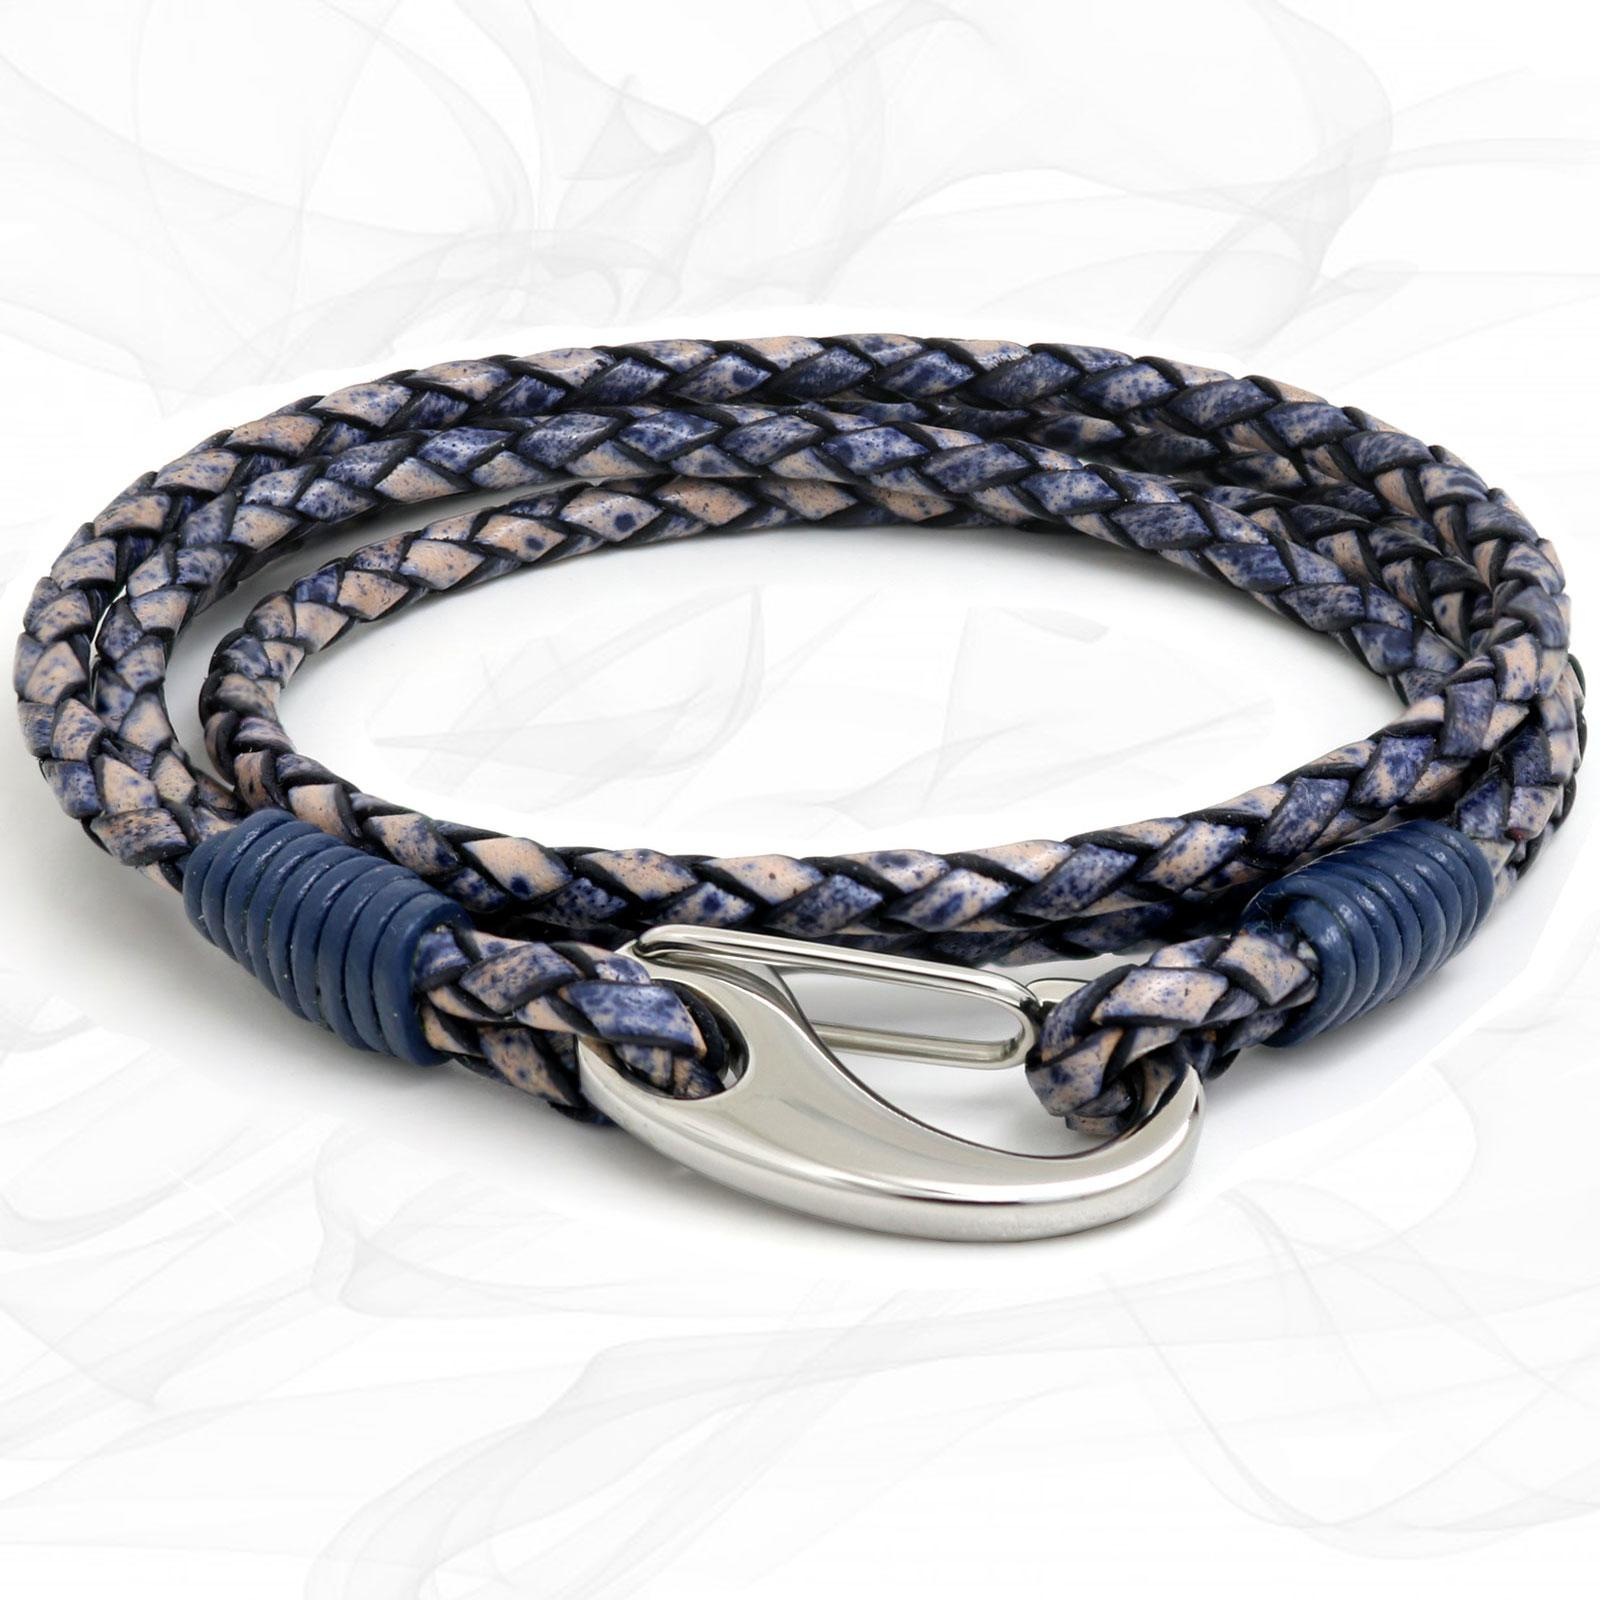 Denim Blue Quad Wrap Bolo Leather Bracelet with Steel Lobster Clasp by Tribal Steel